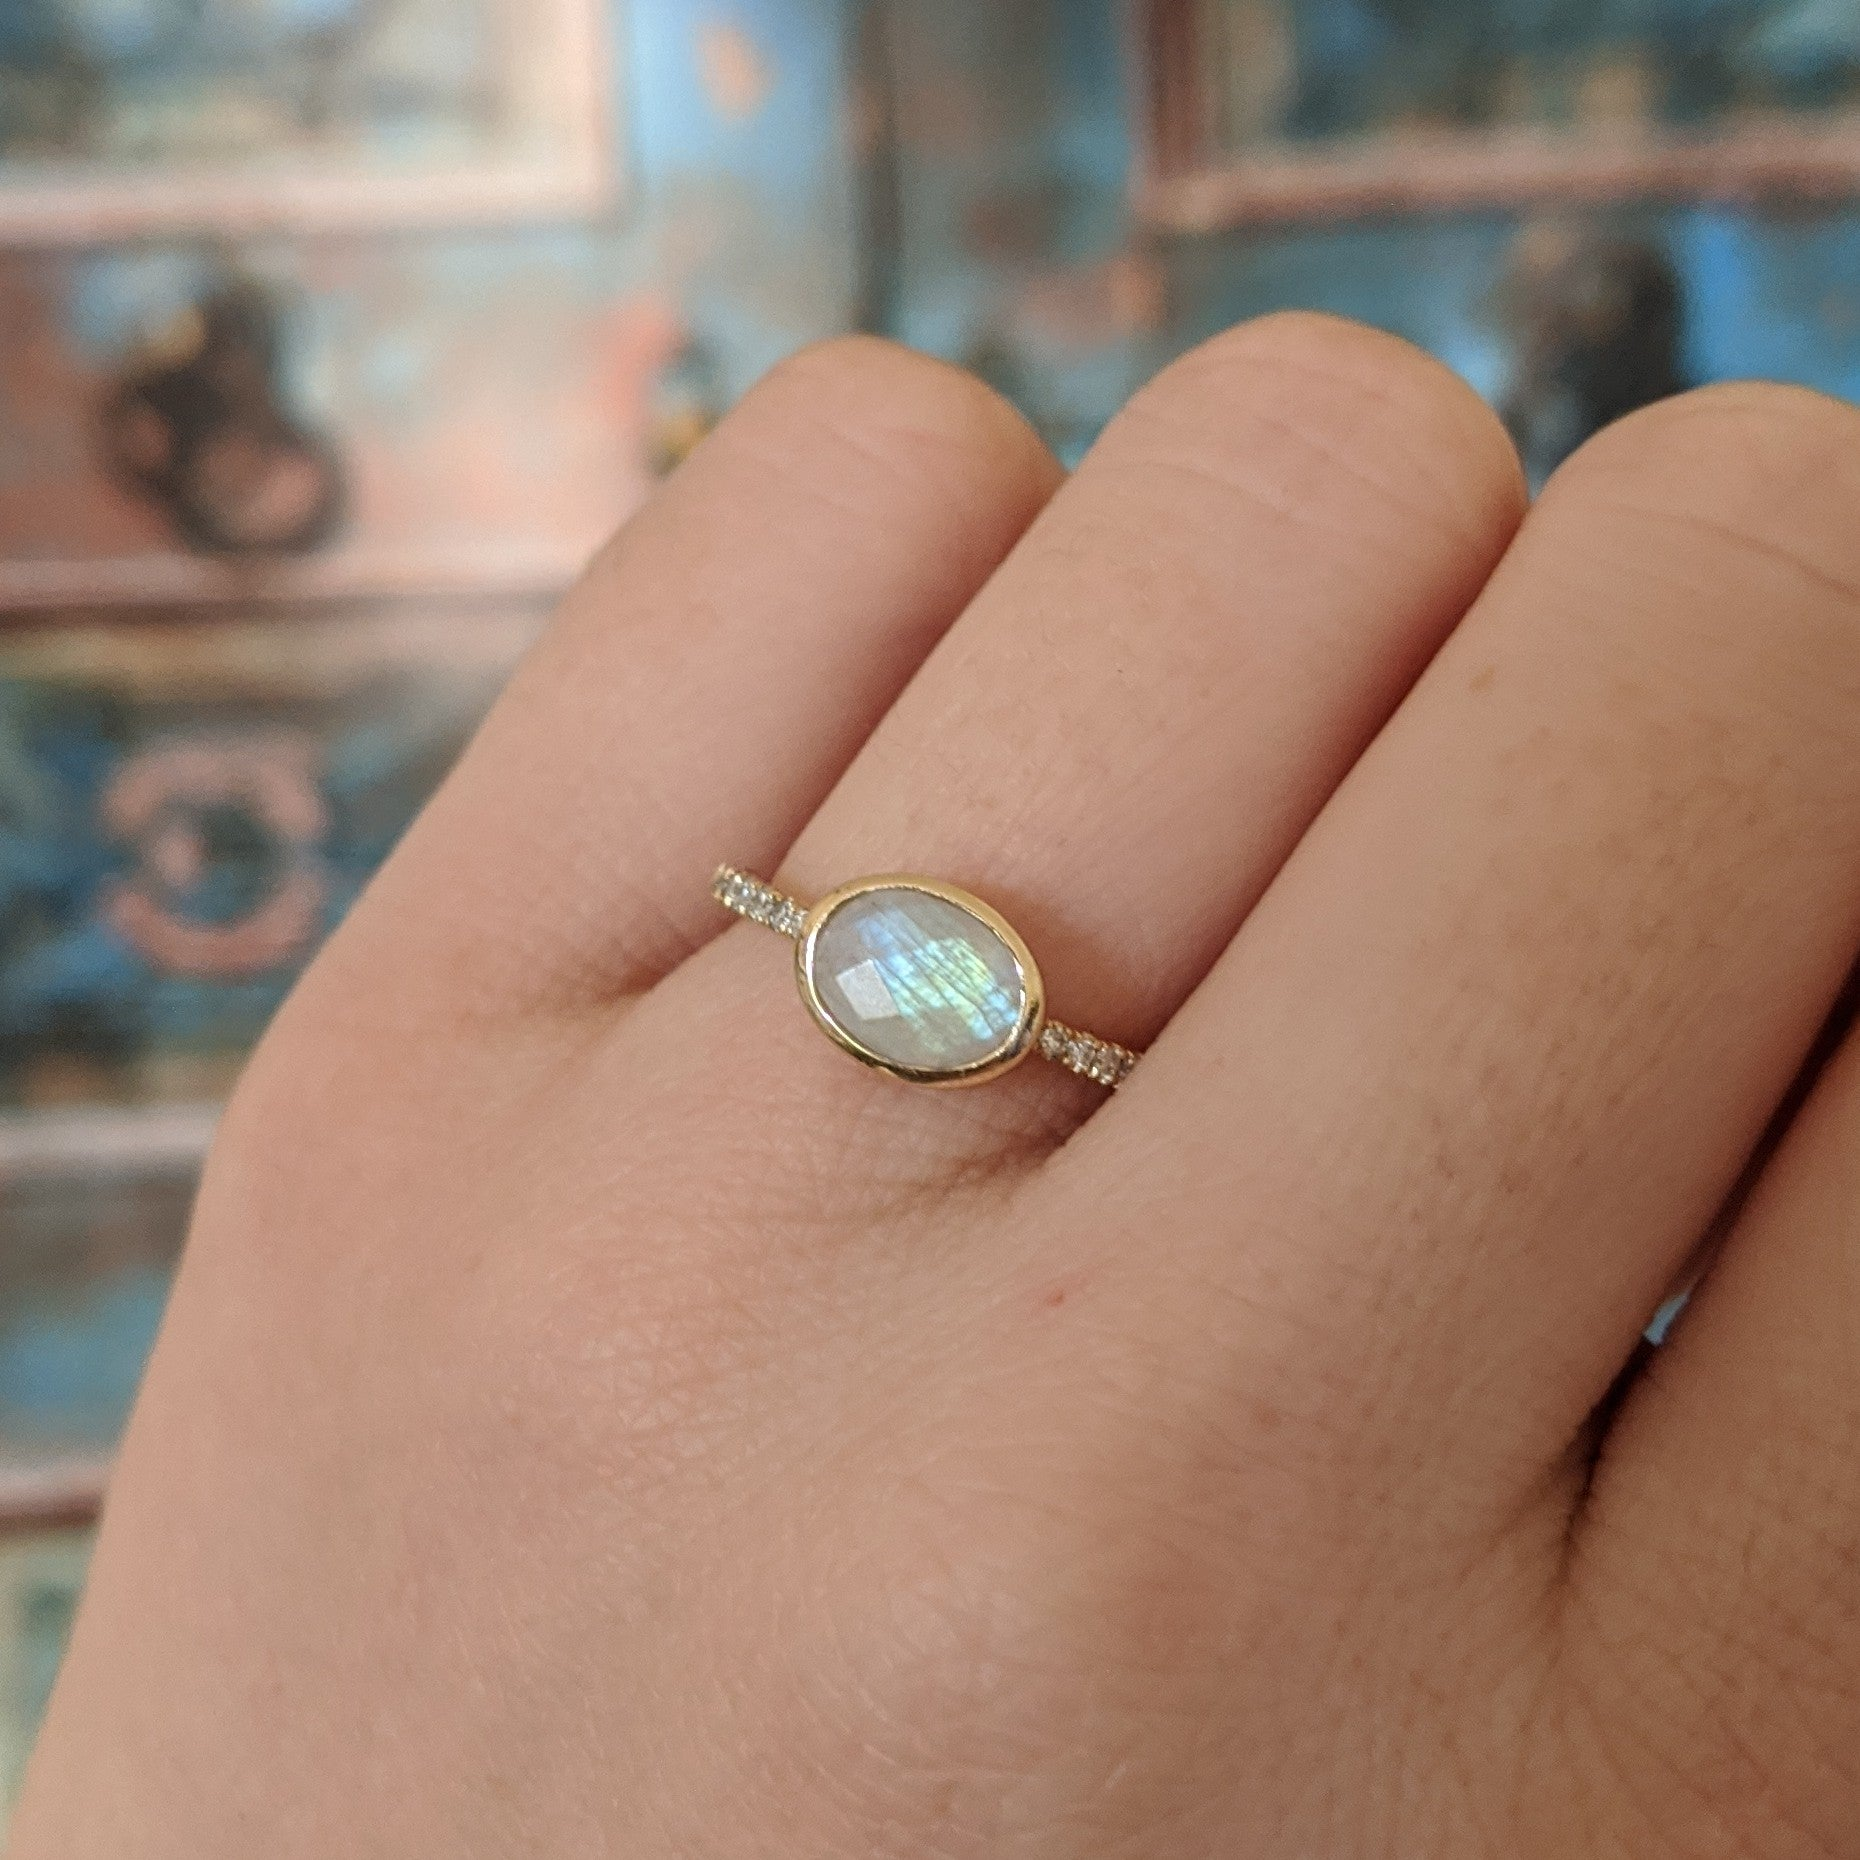 Moonstone Oval Ring With Diamonds in 14k Gold